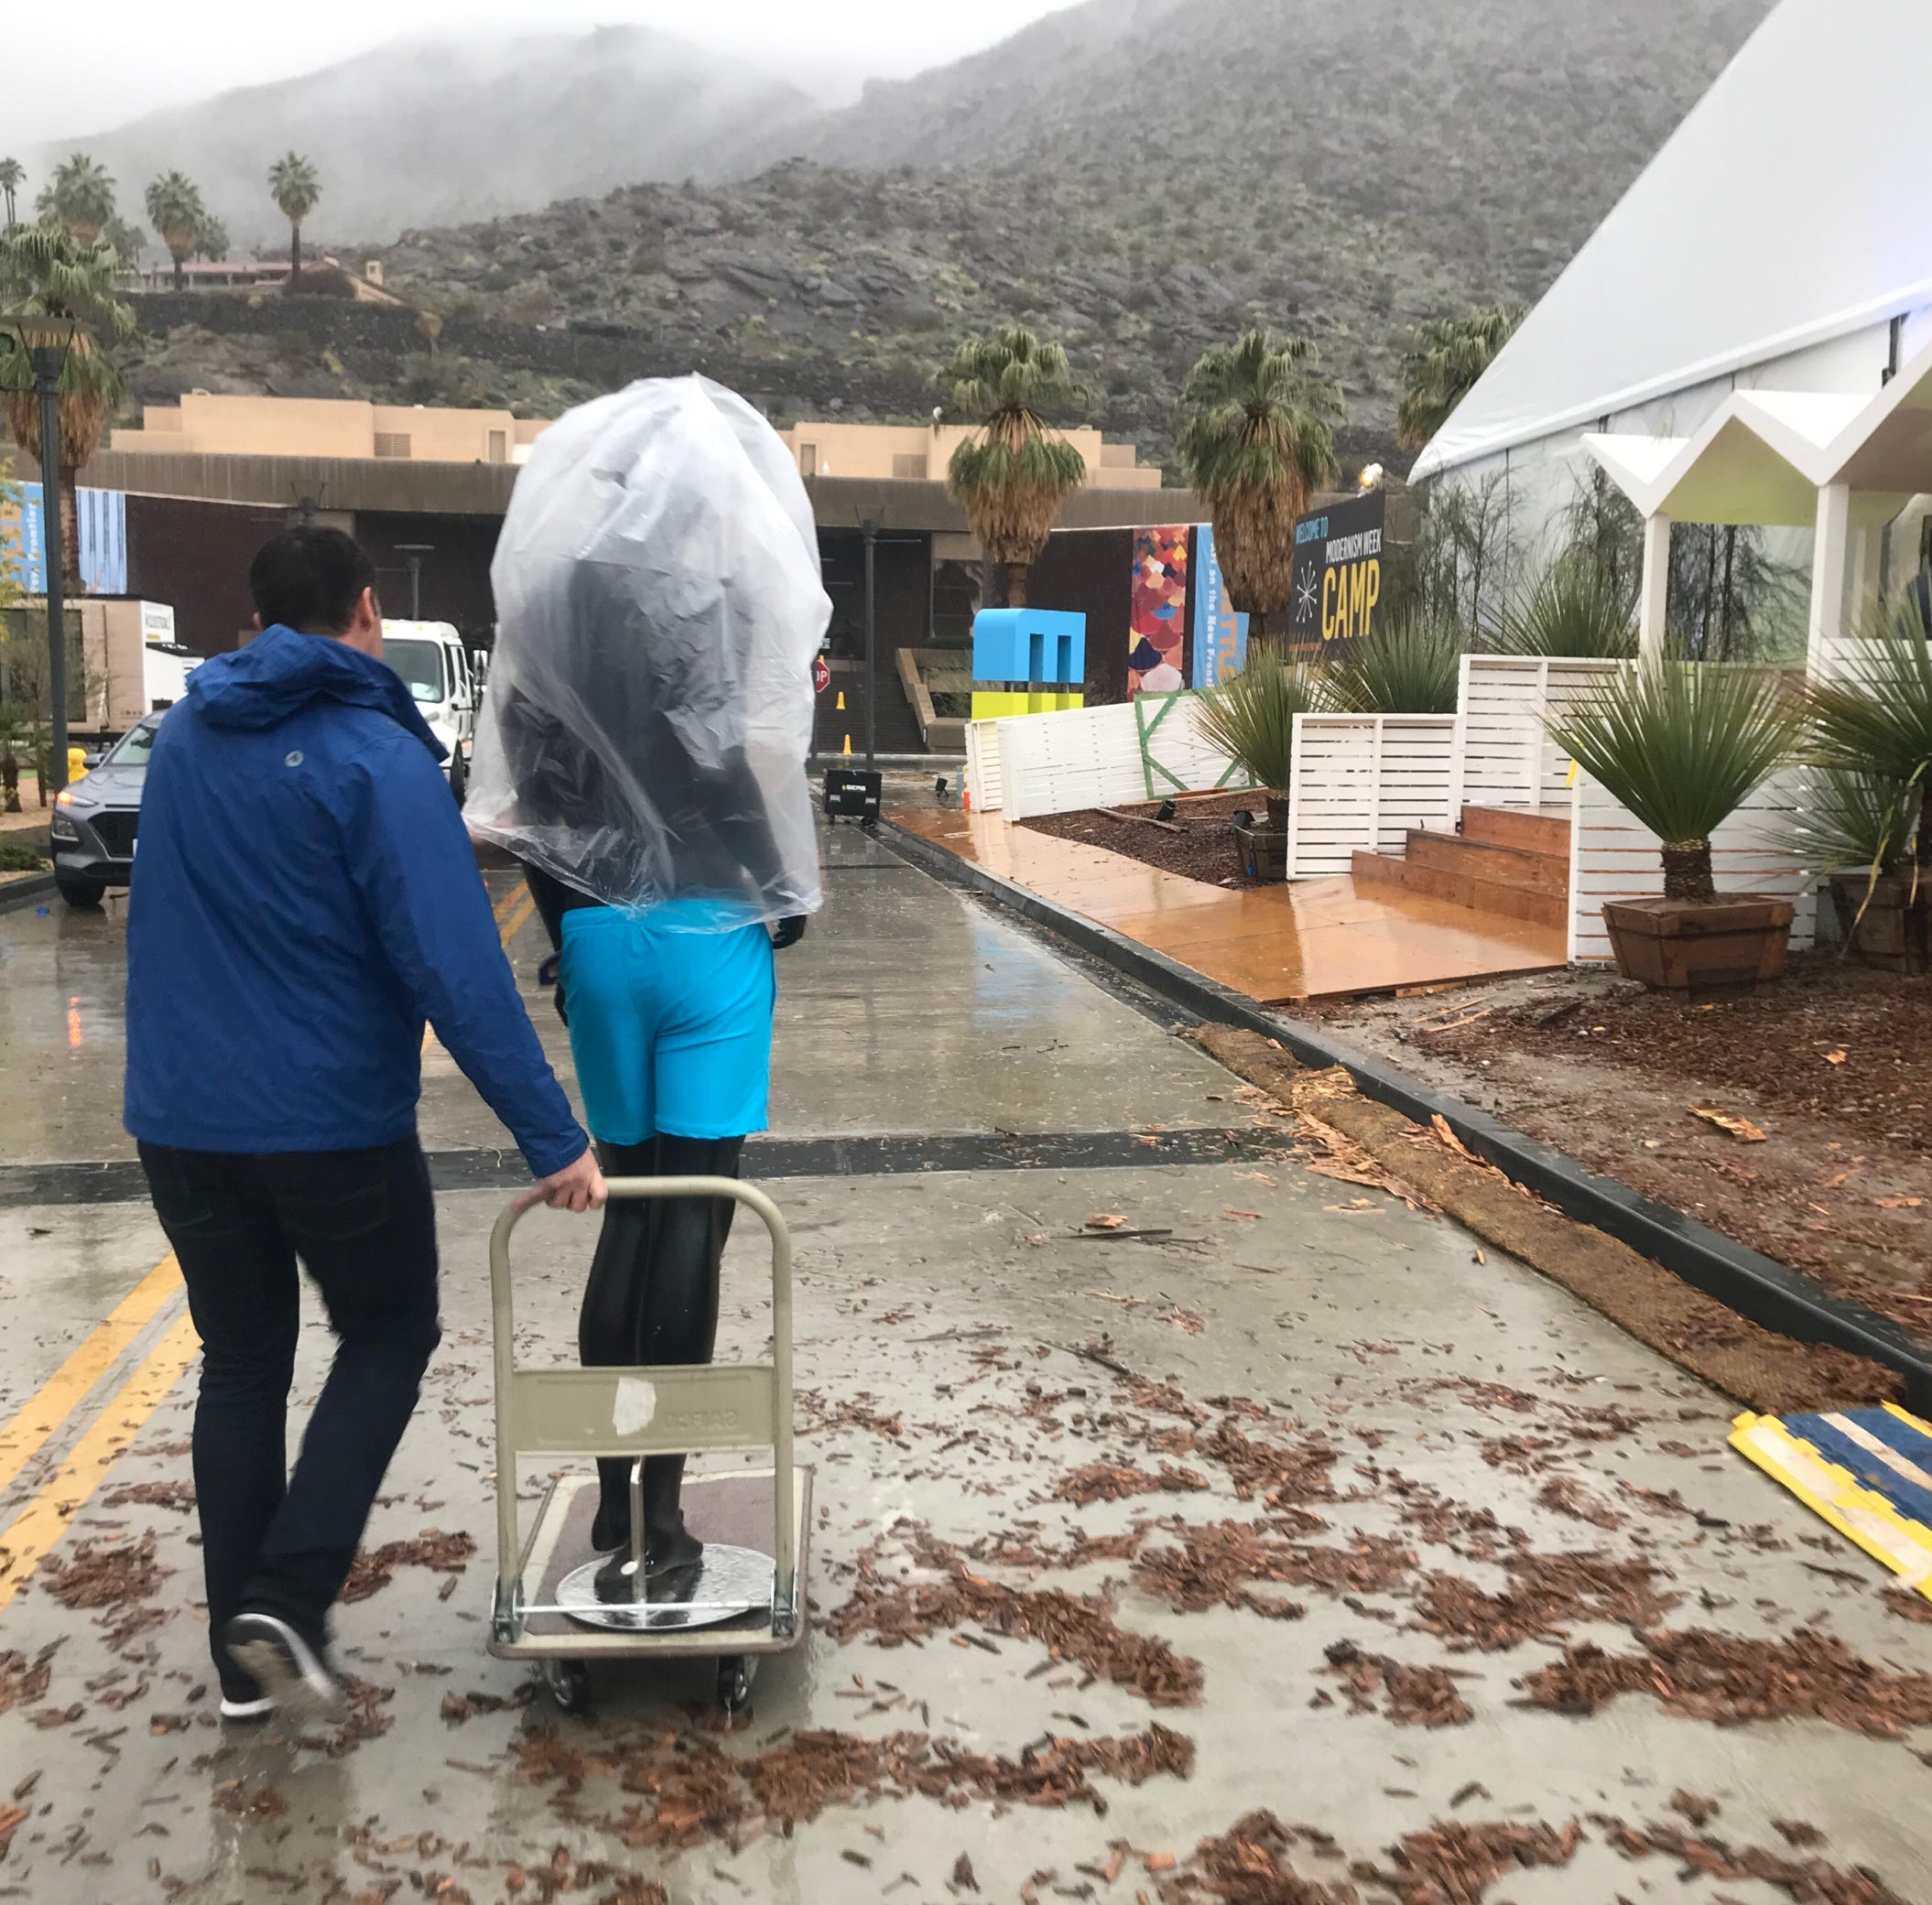 Rain or shine, Modernism Week 2019 kicks off Thursday. CAMP will open Friday as planned